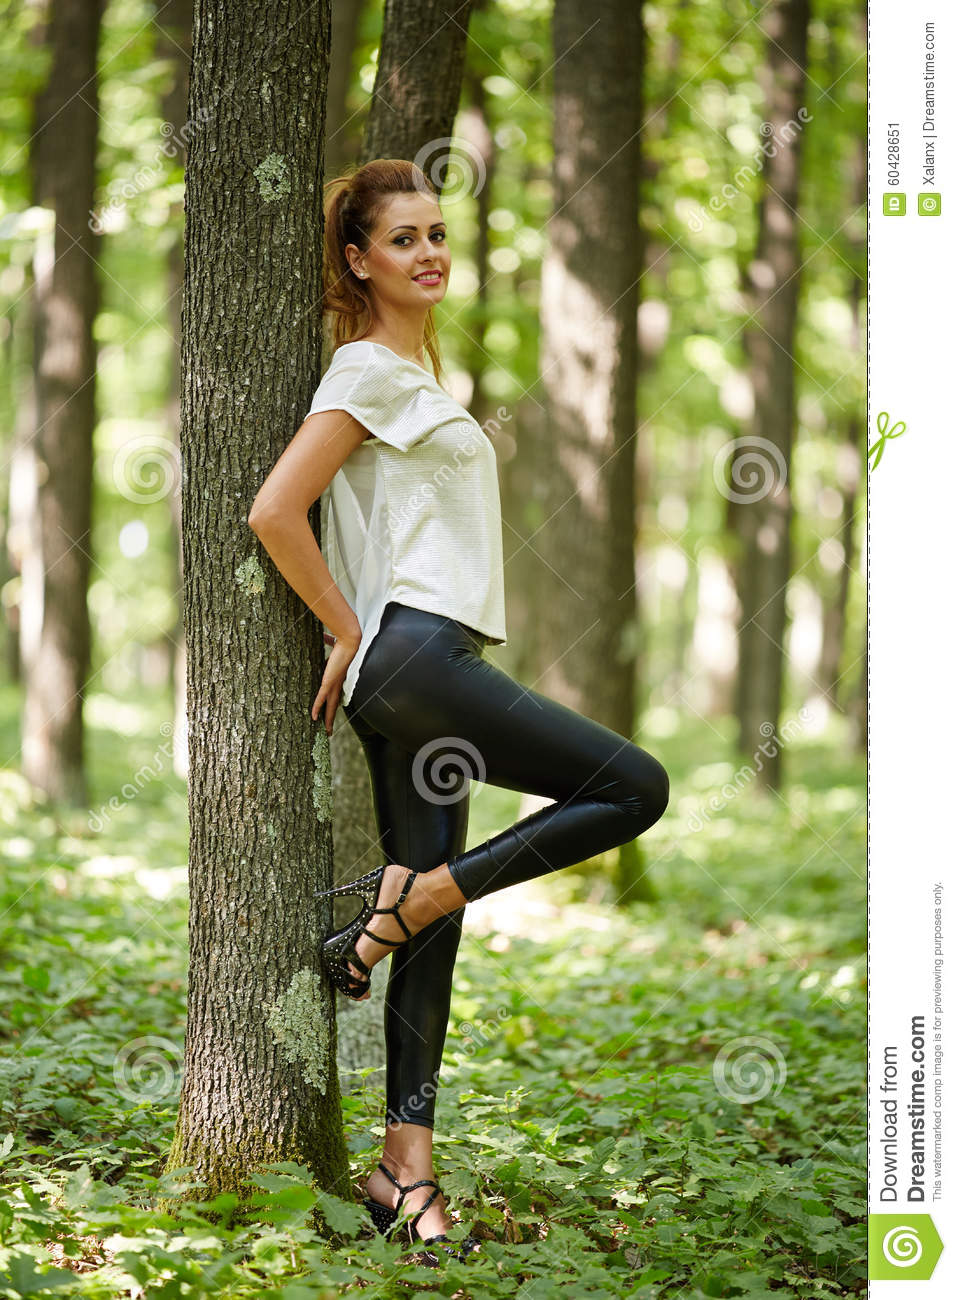 single women in oak forest Free classified ads for women seeking men and everything else find what you are looking for or create your own ad for free.